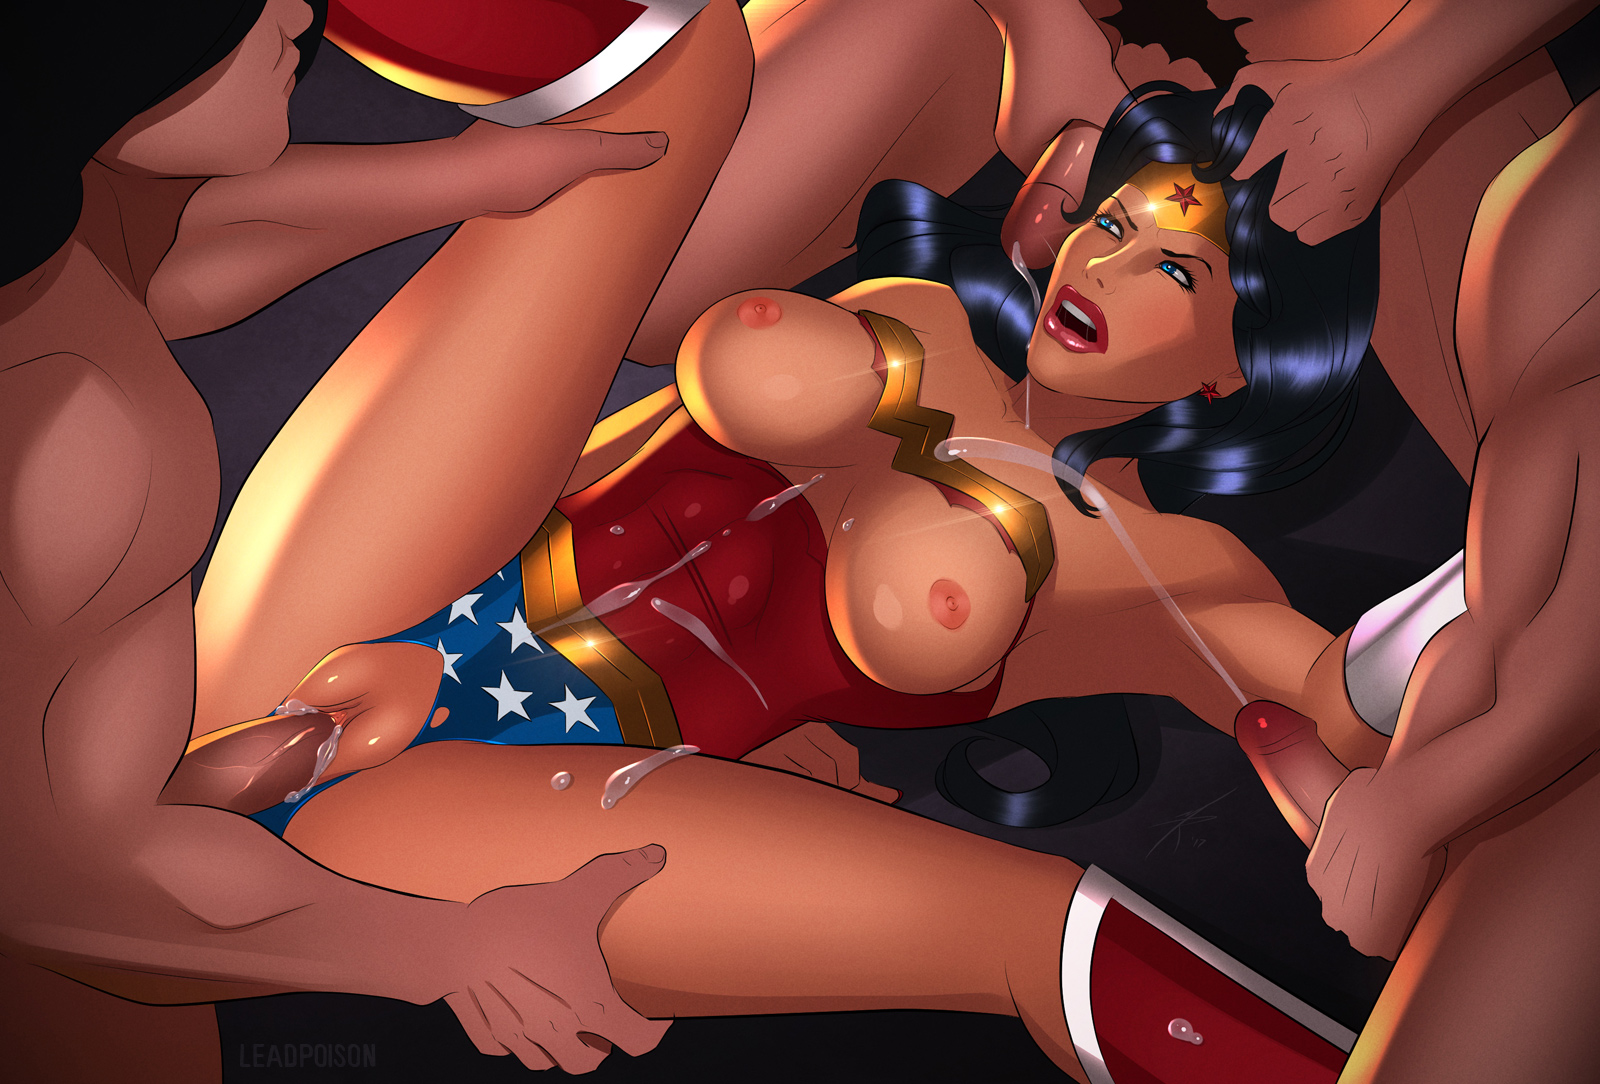 Wonder woman first comic book-5081